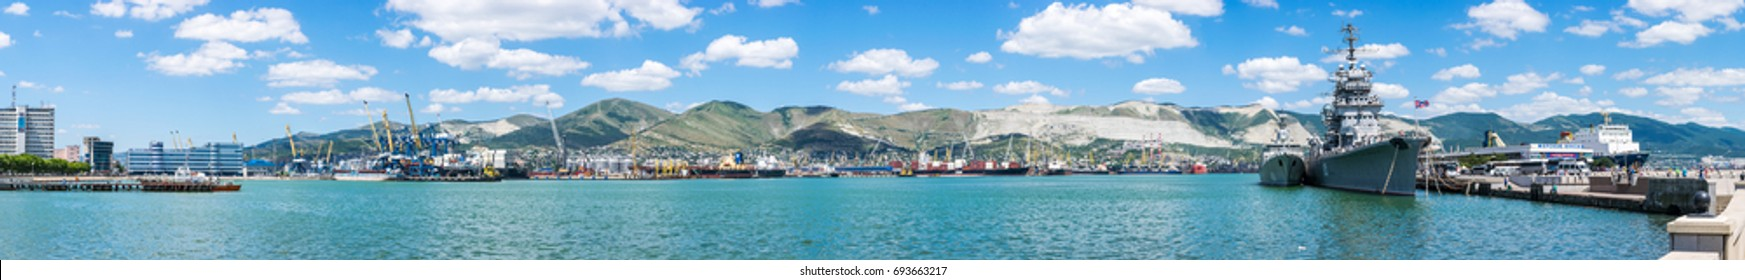 "NOVOROSSIYSK, RUSSIA - JULY 5, 2017: Panoramic view of Tsemes bay, port and sea-front in Novorossiysk, Russia. The inscription on the pier is ""Boat trips"""